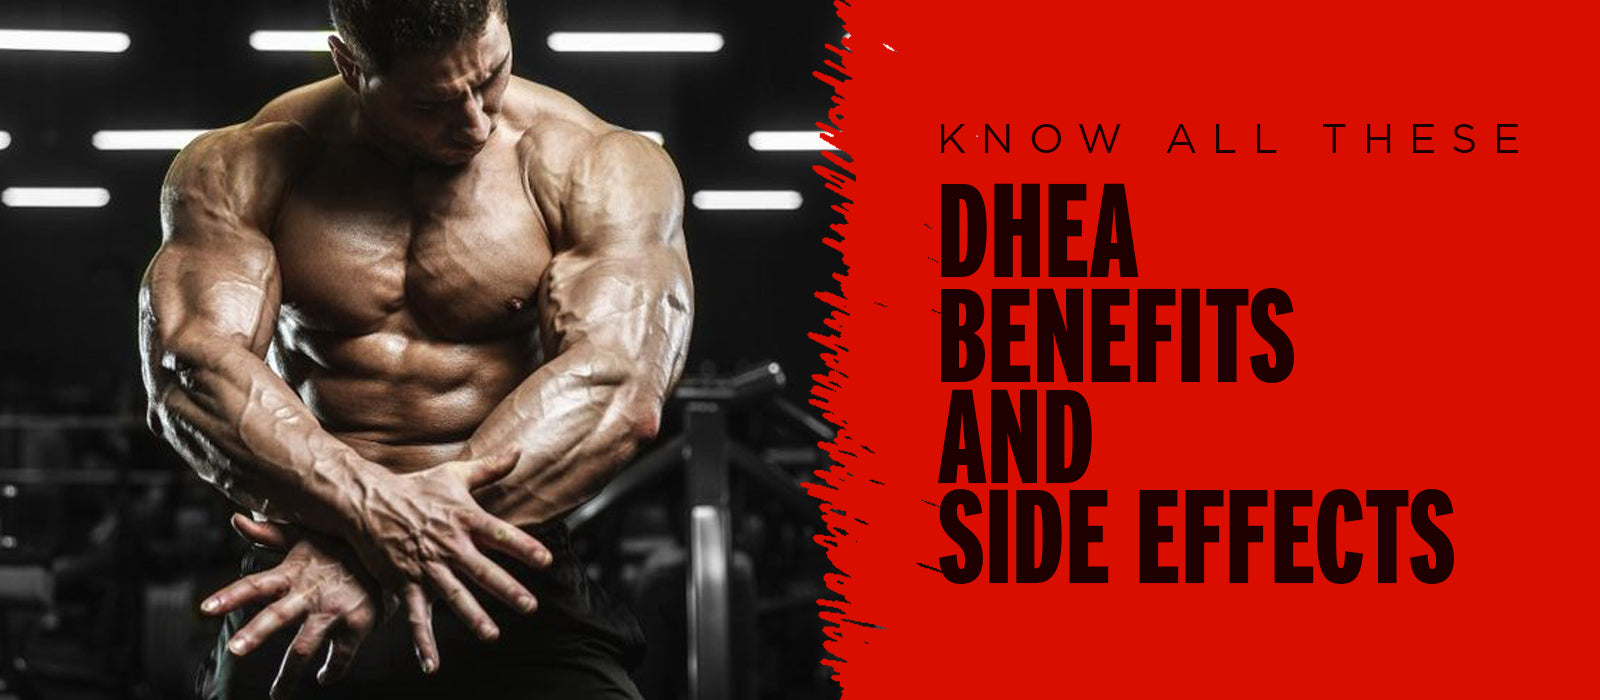 Know All These DHEA Benefits And Side Effects